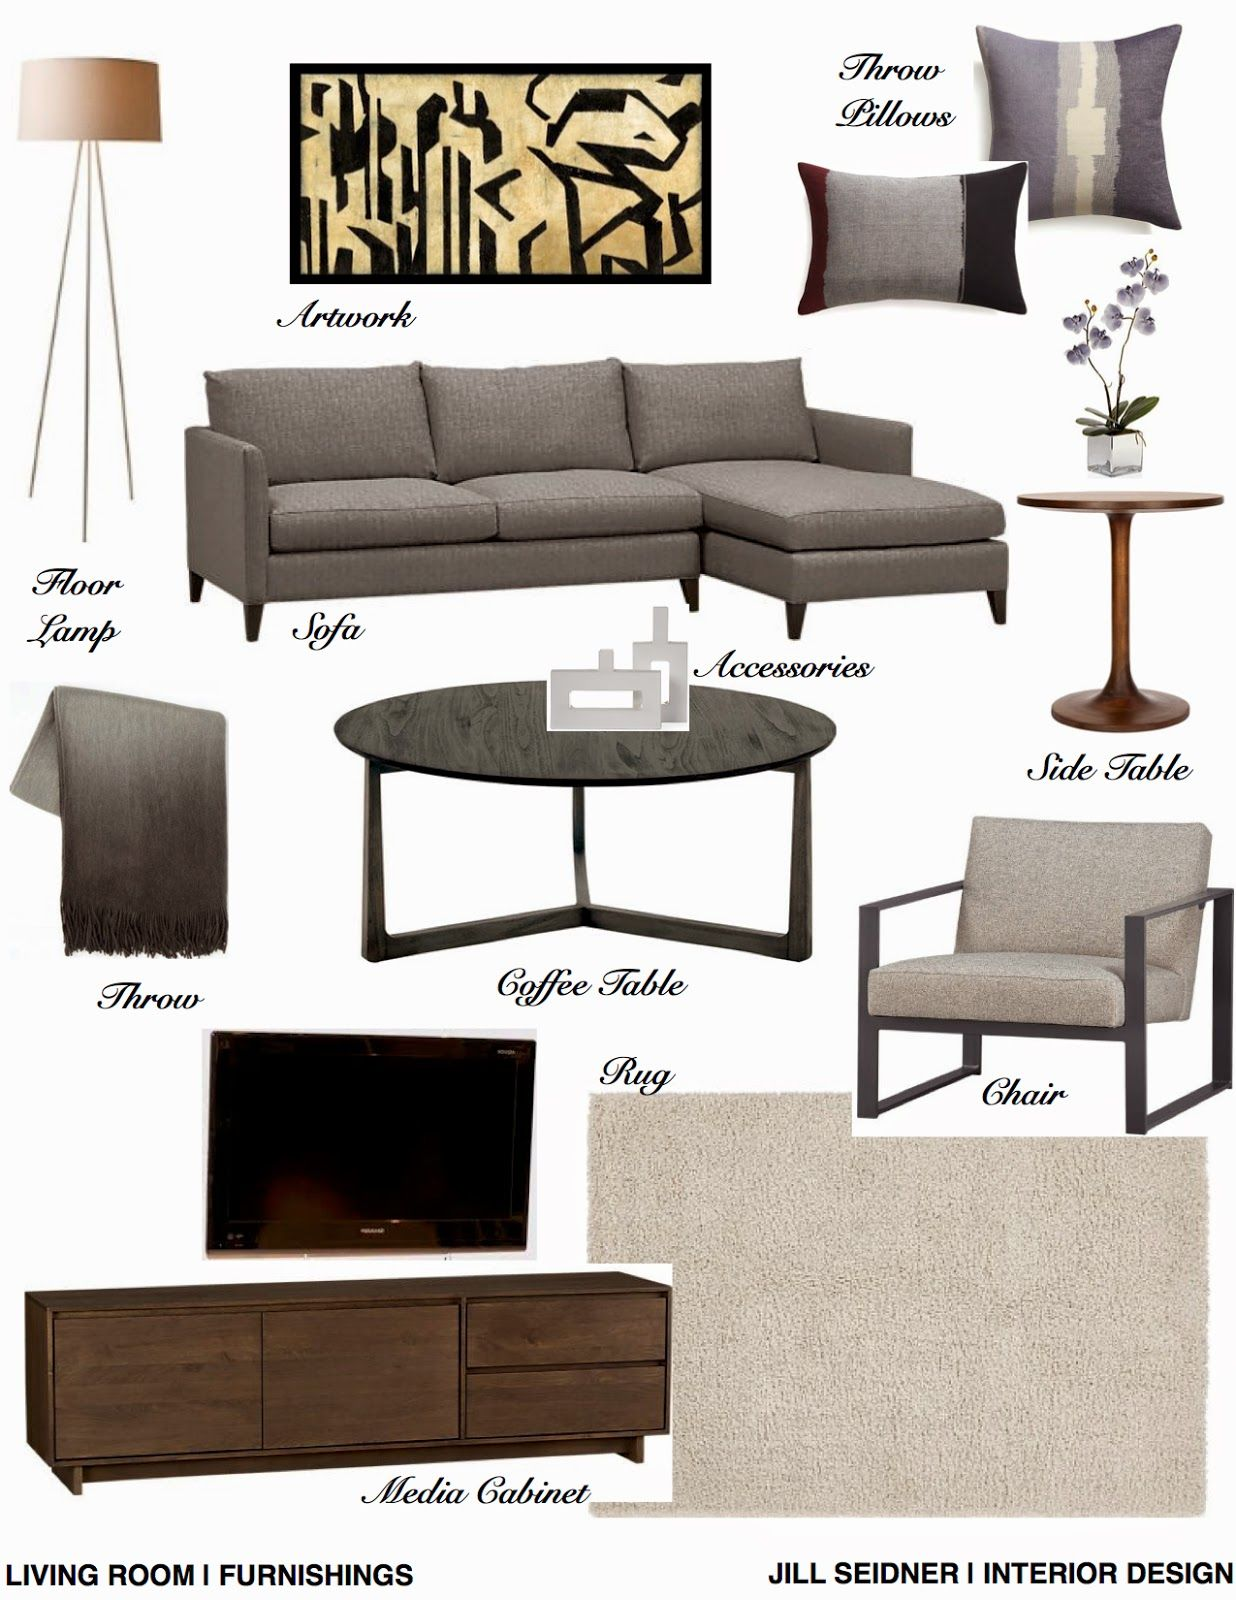 Living Room Design Concepts Brilliant Jill Seidner  Interior Design Concept Boards  My Apartment Inspiration Design